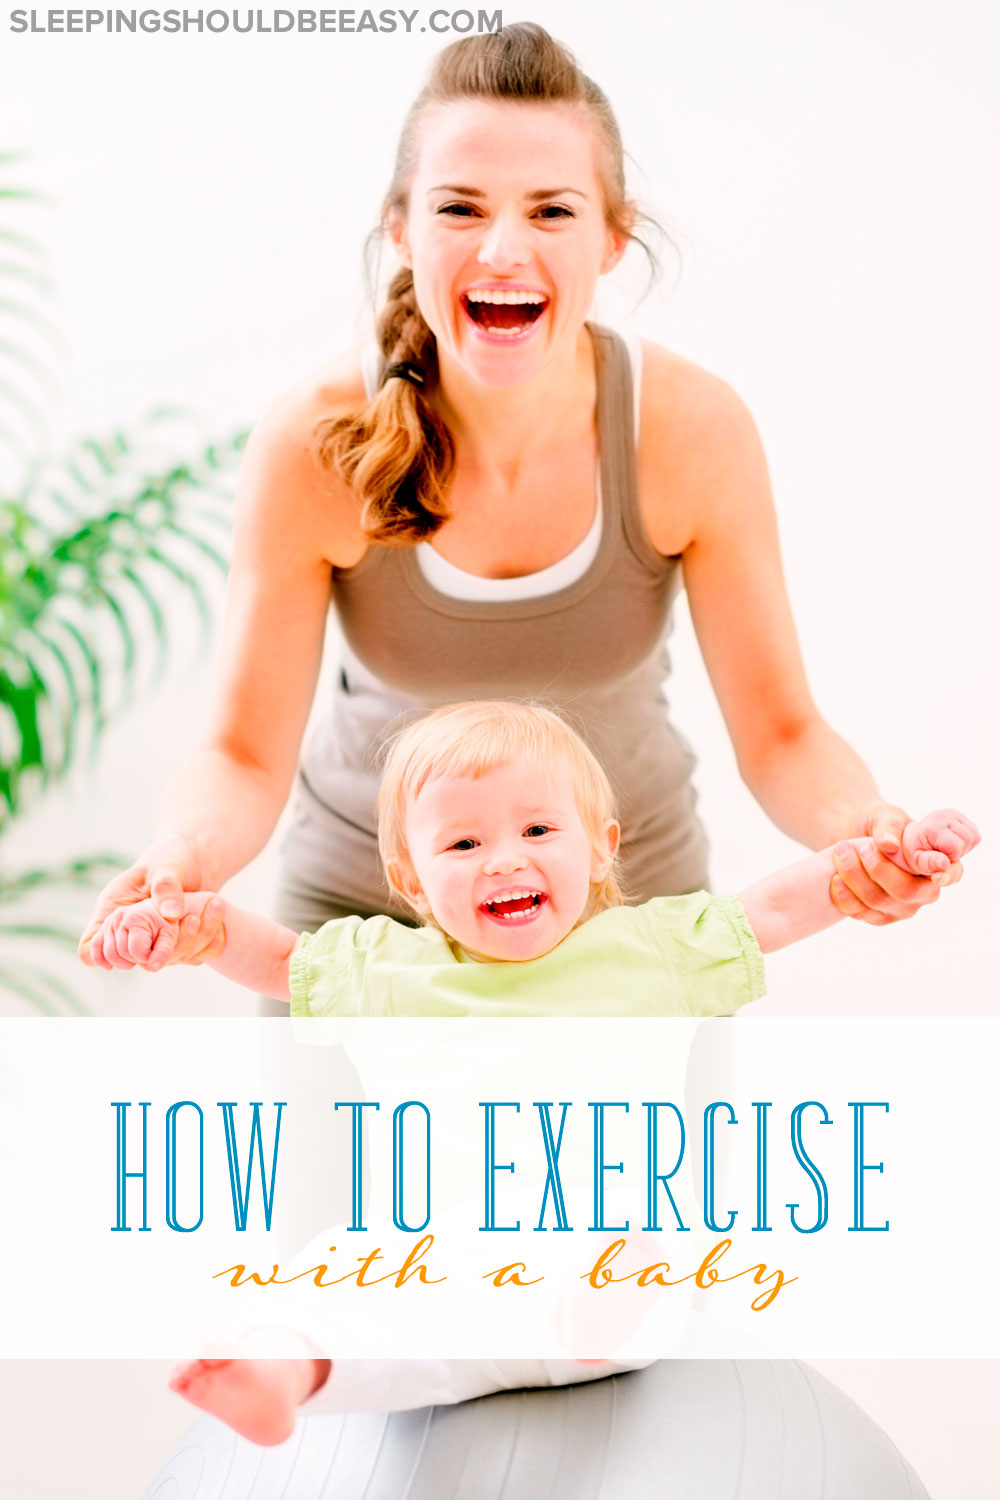 Yes, you CAN exercise even with young children, either with you or at home. Read several ideas on how to exercise with a baby in tow.